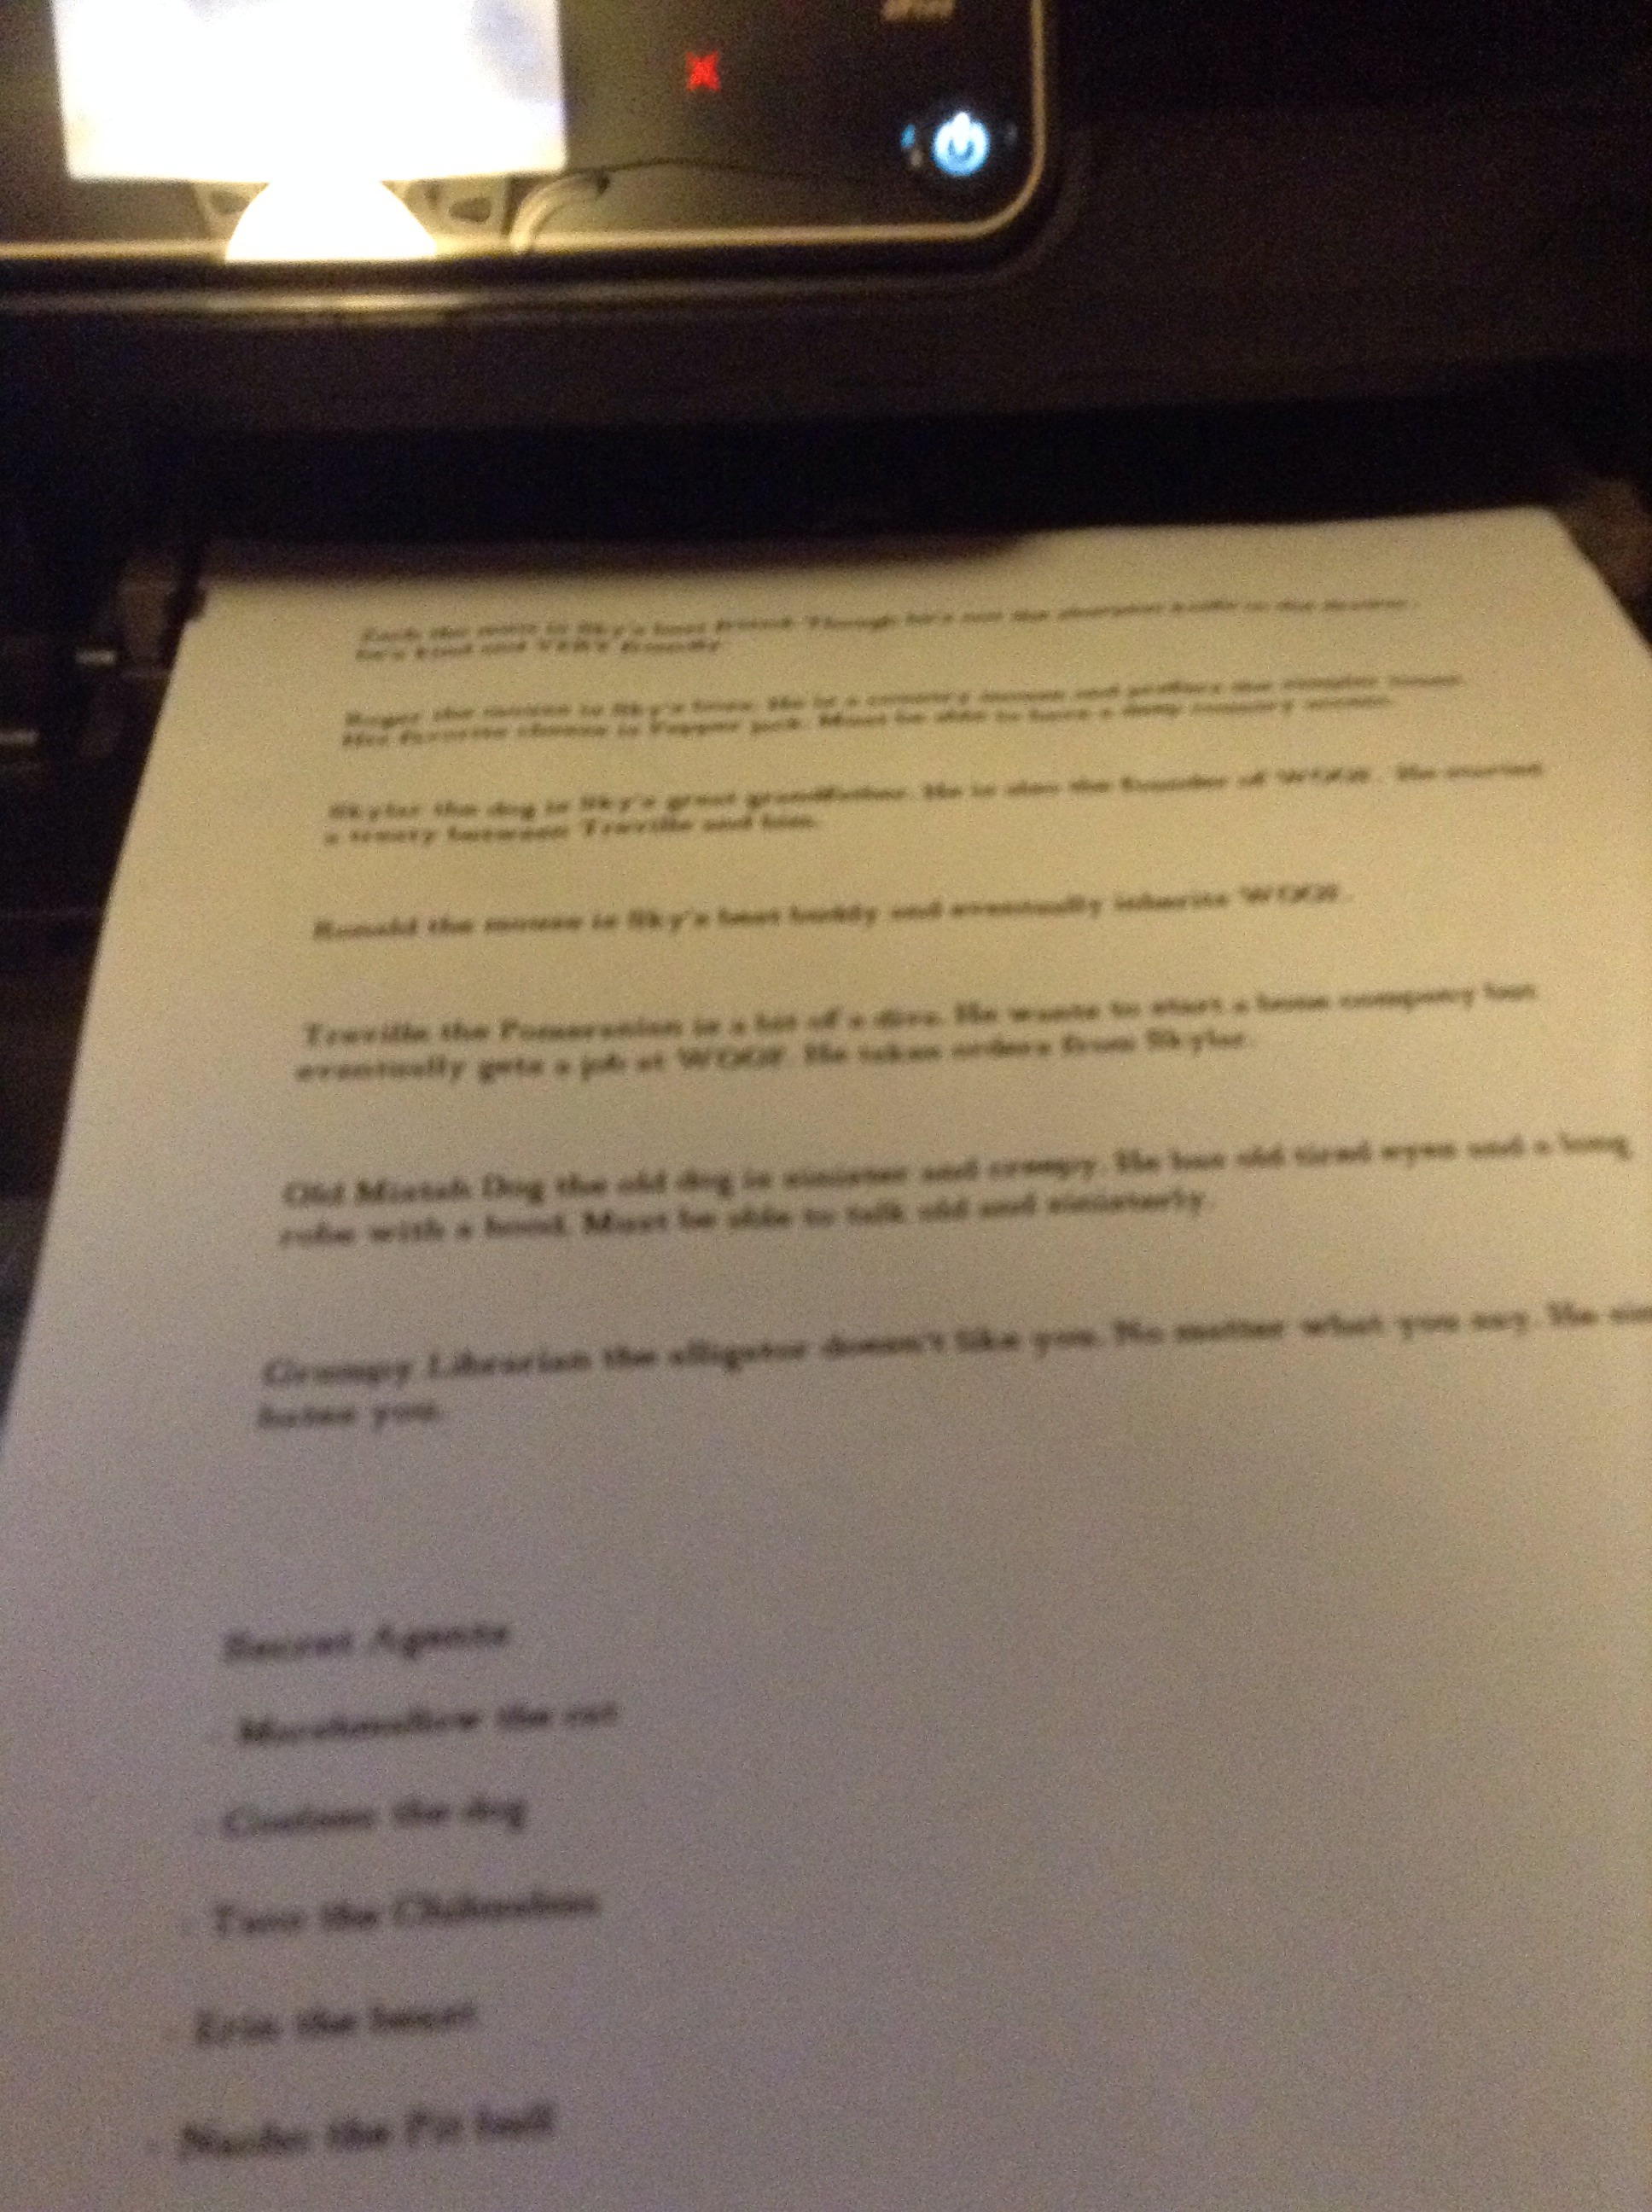 How To Print Double Sided Papers